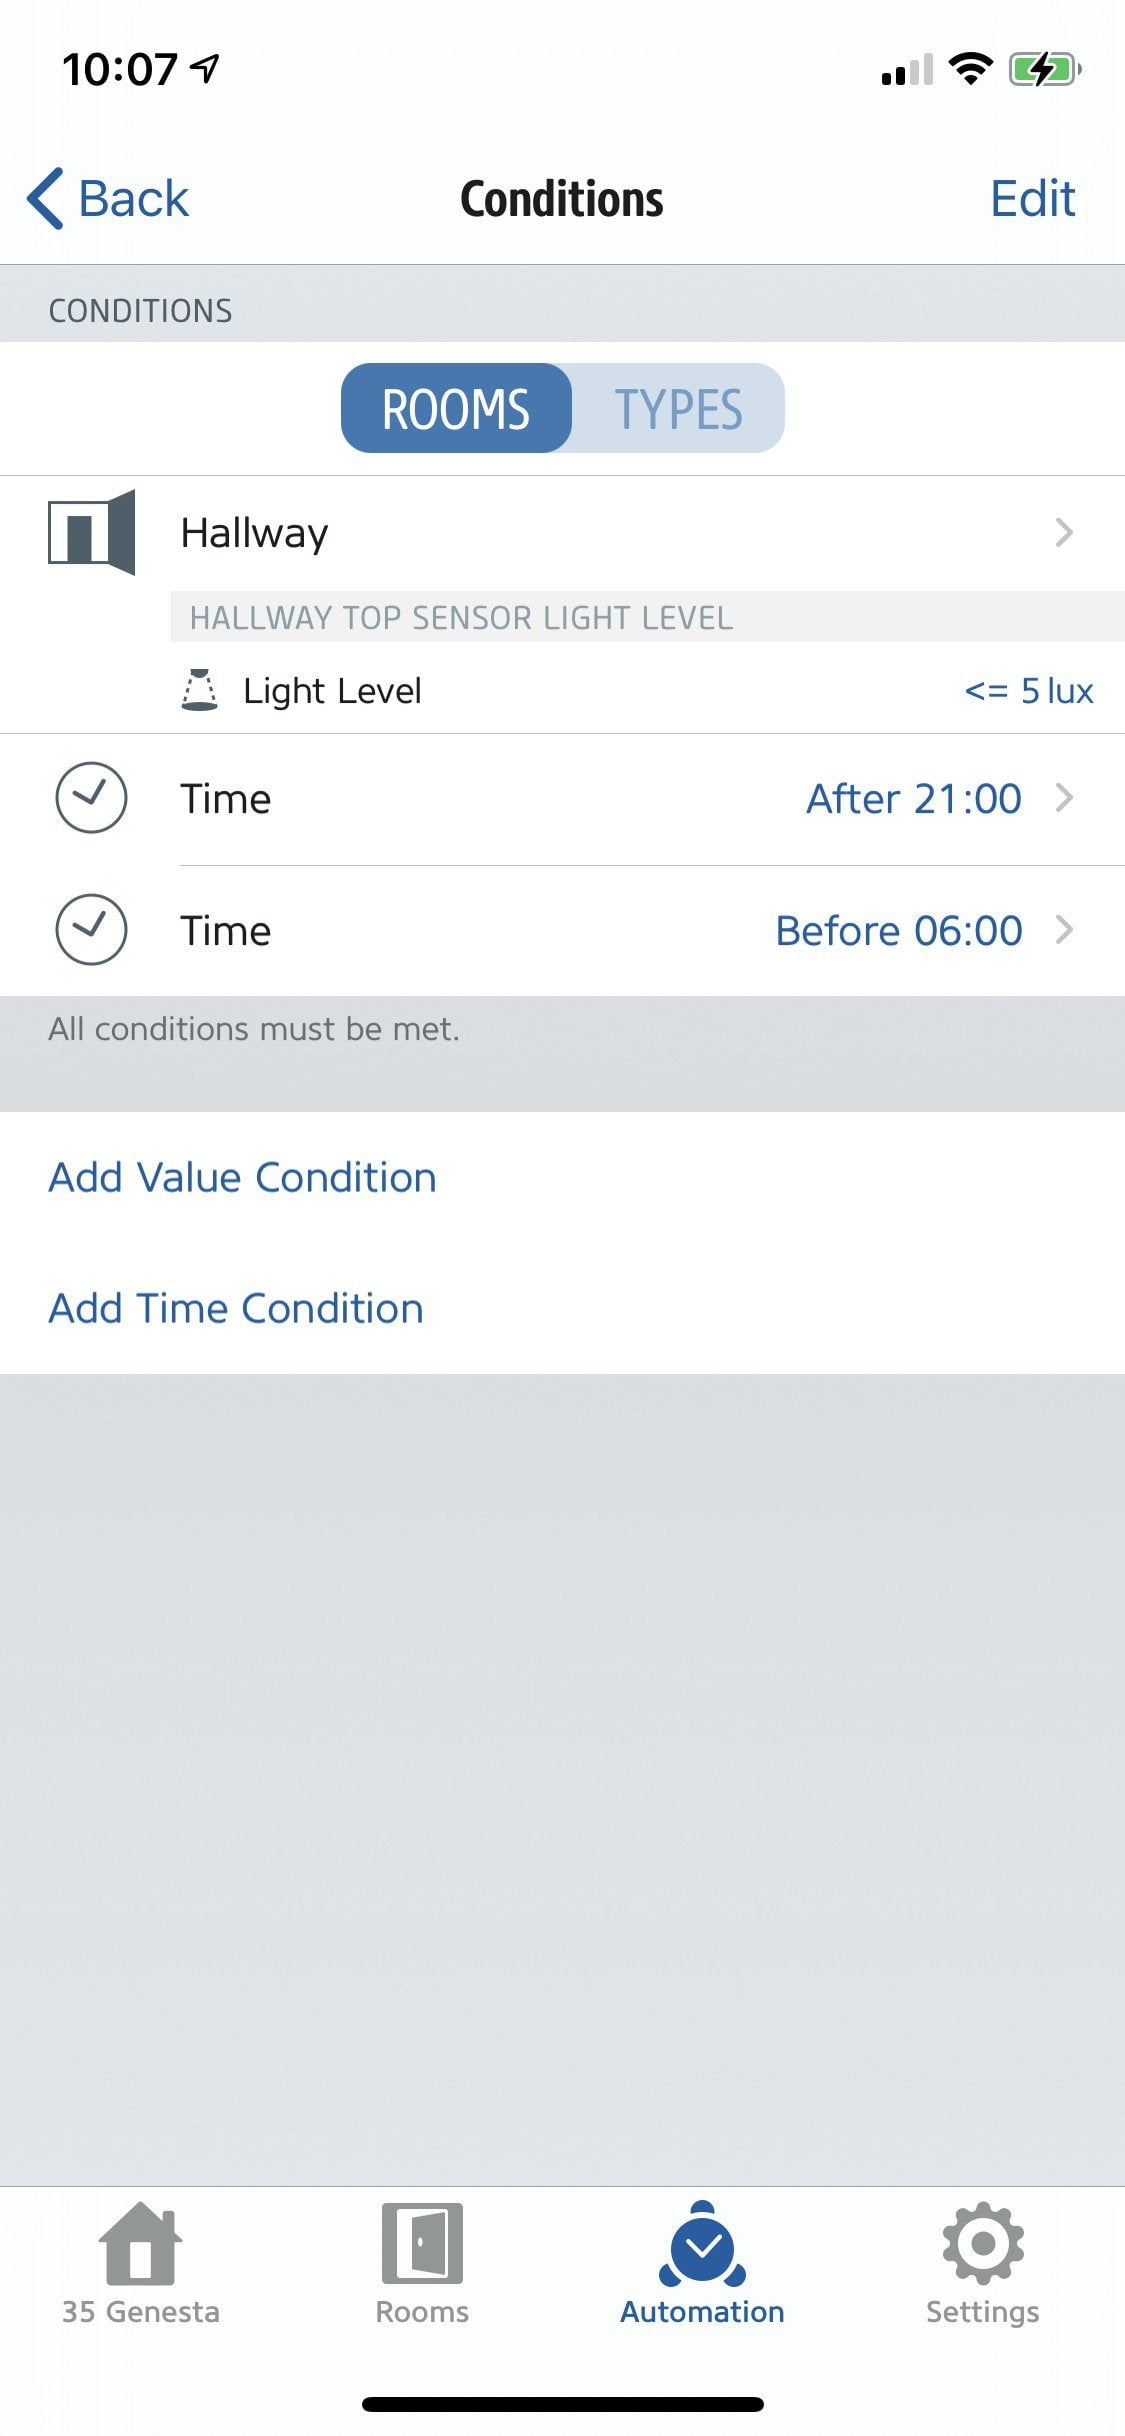 You need help automating the brightness setting of the light